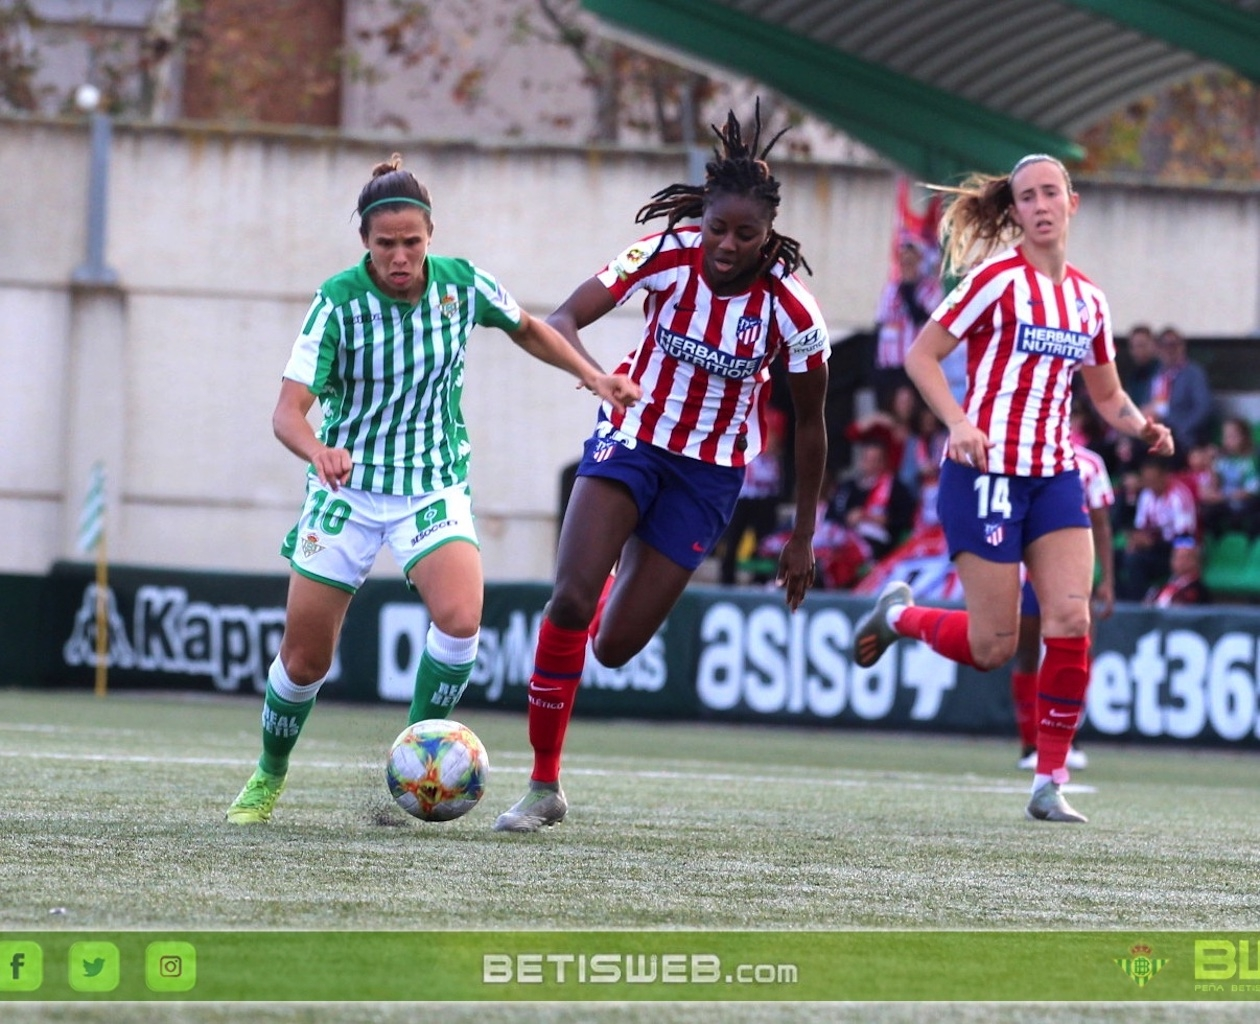 J11 Betis Fem - At_077